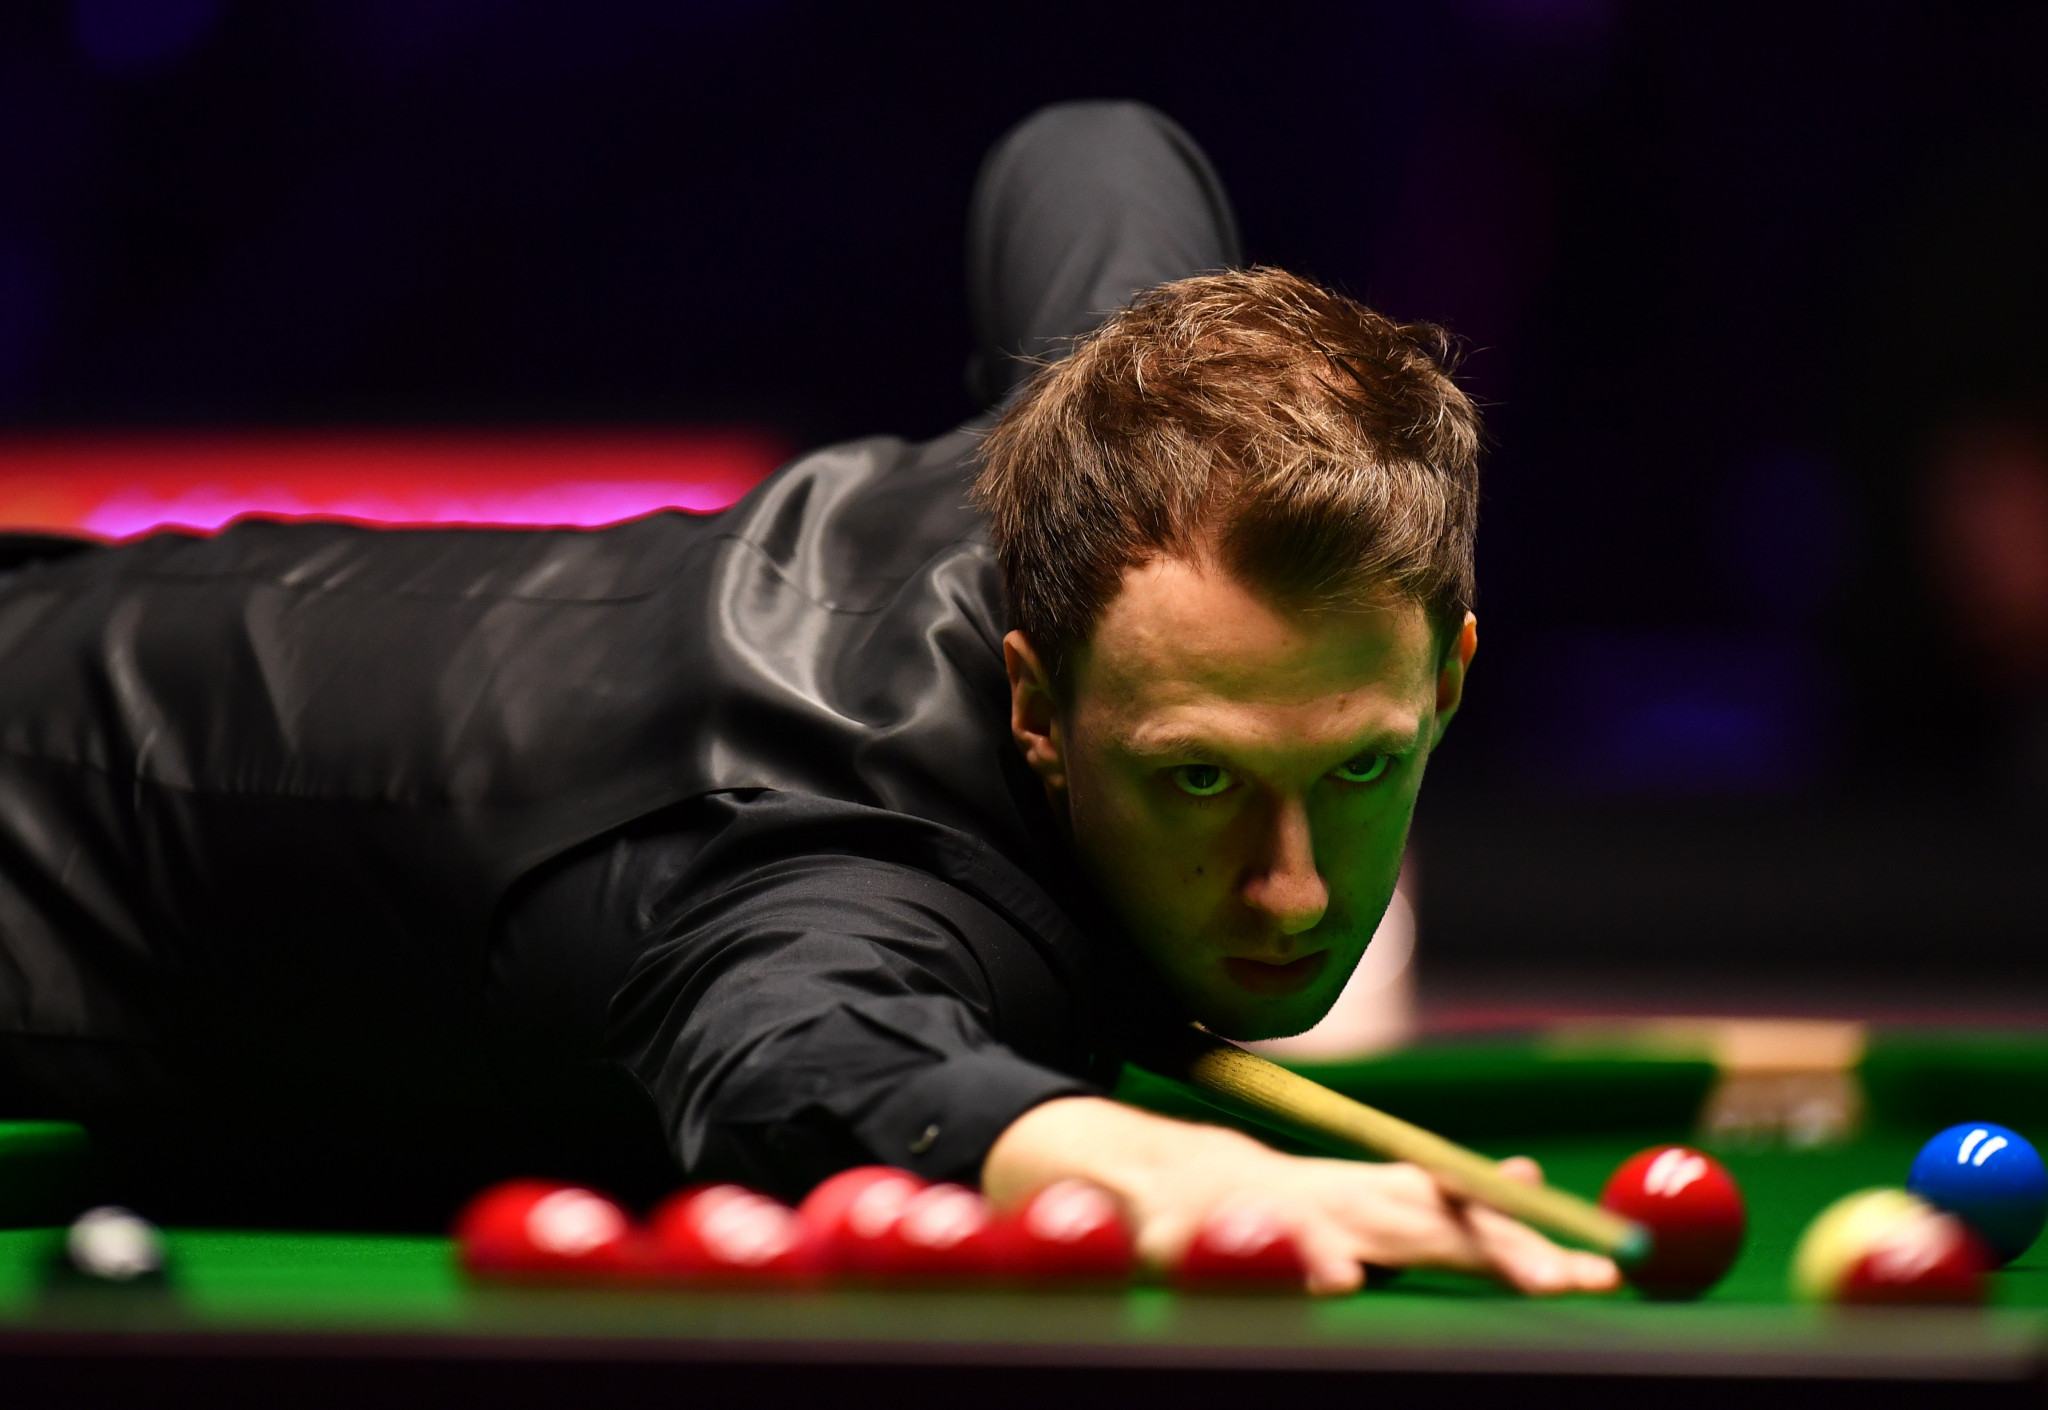 England's Judd Trump looks set for a last four spot in the World Snooker Championship at the Crucible in Sheffield ©Getty Images